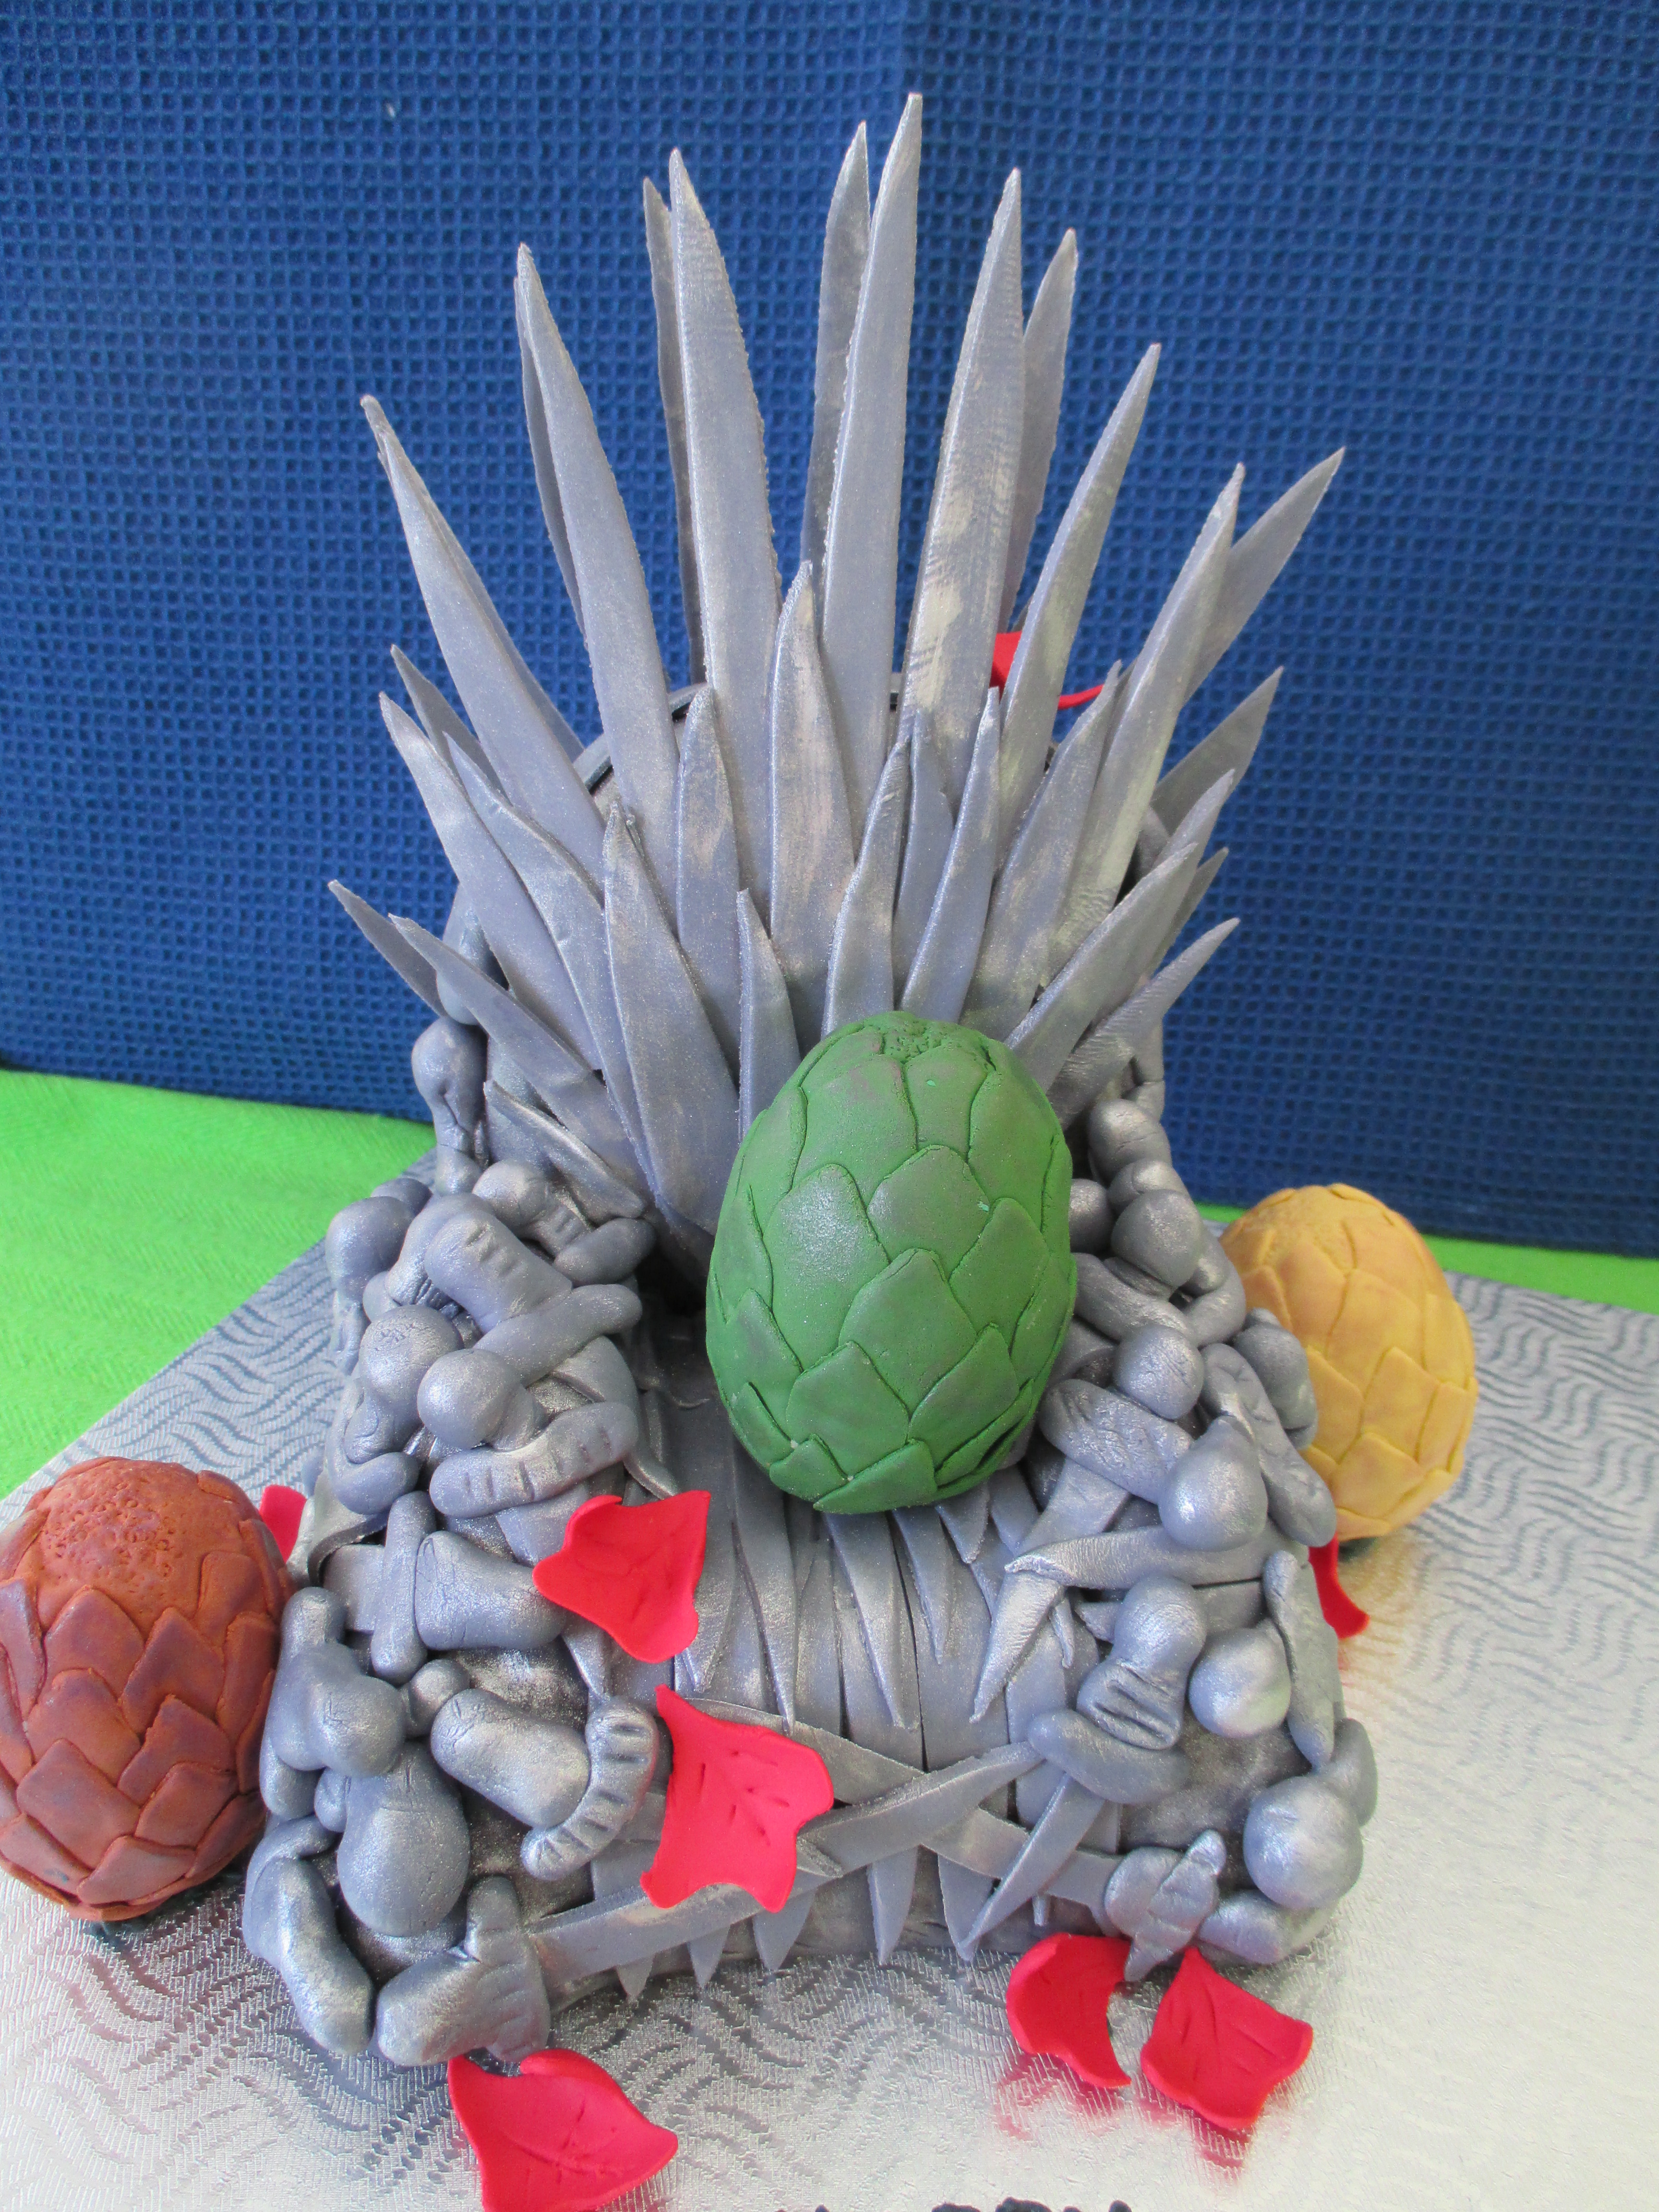 Game of thrones chair cake - Game Of Thrones Iron Throne Cake